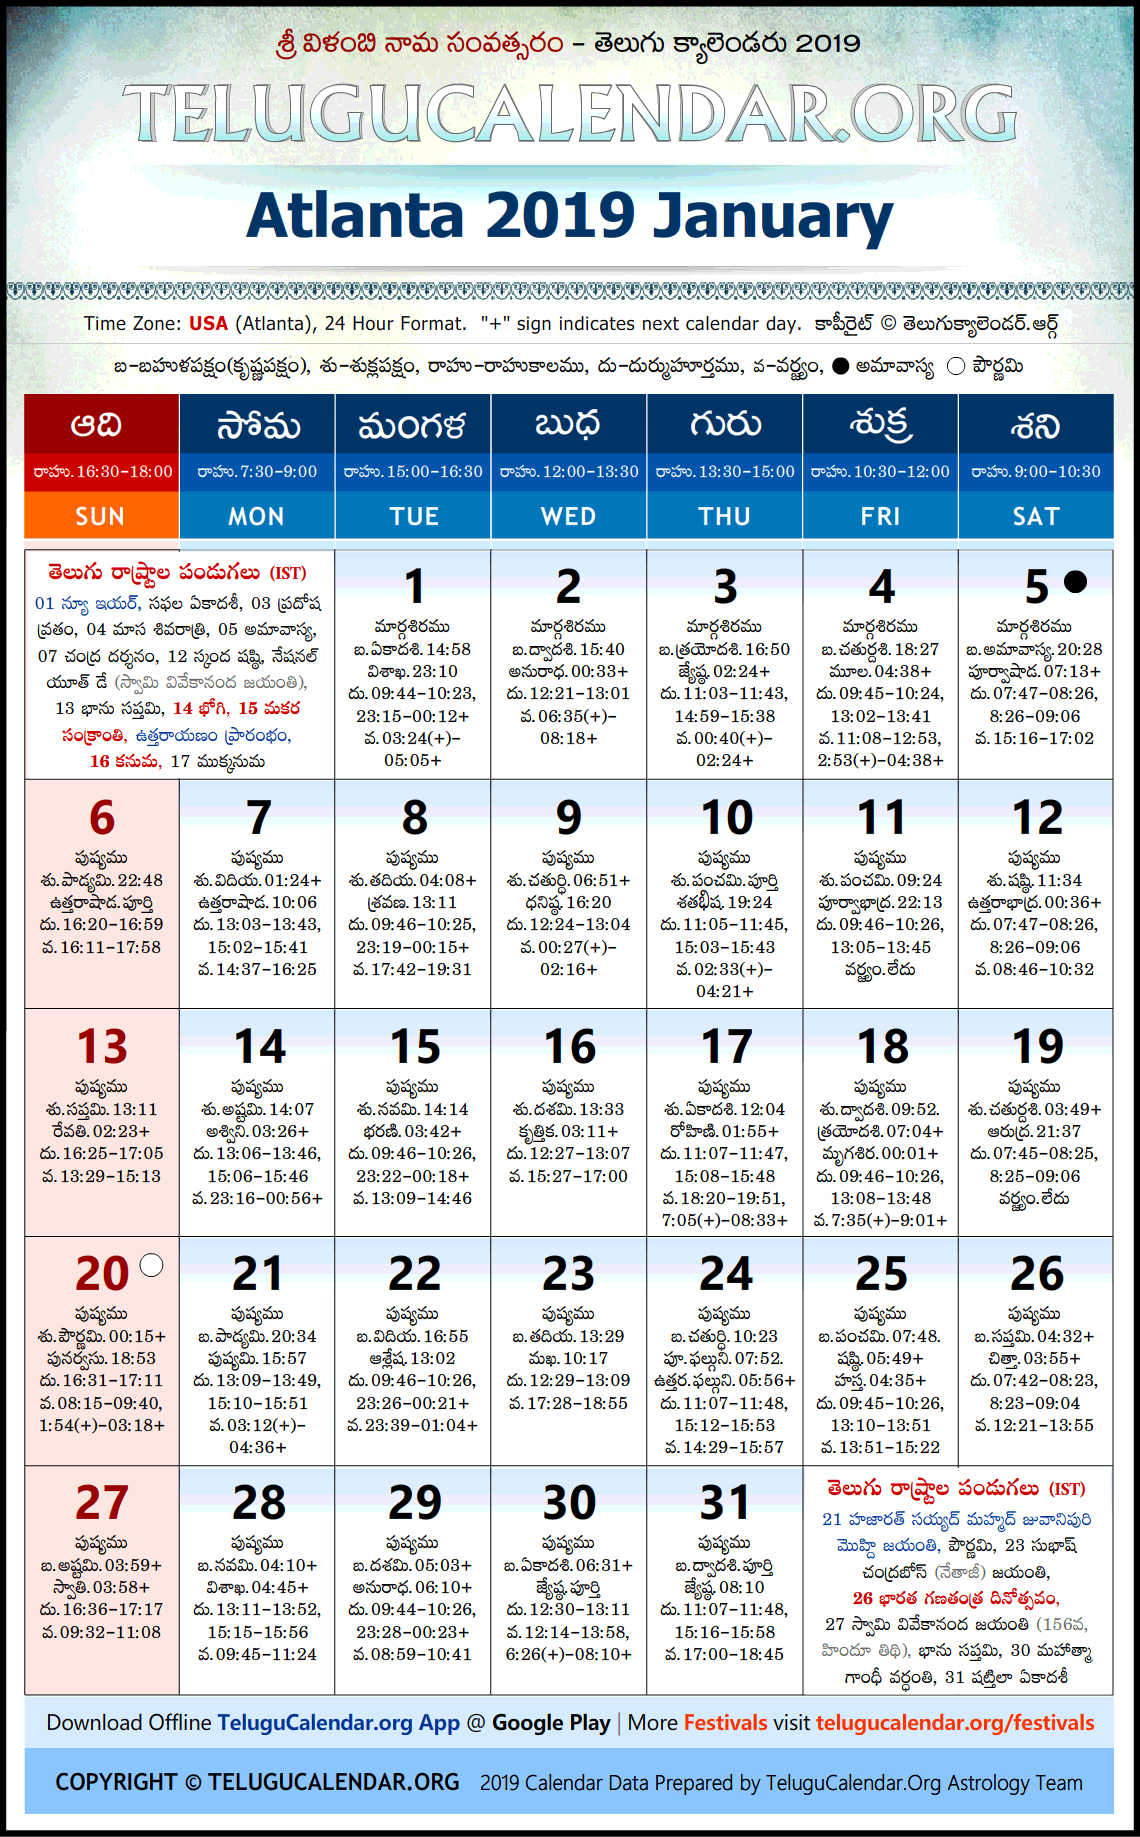 Madison : Telugu calendar 2019 january atlanta